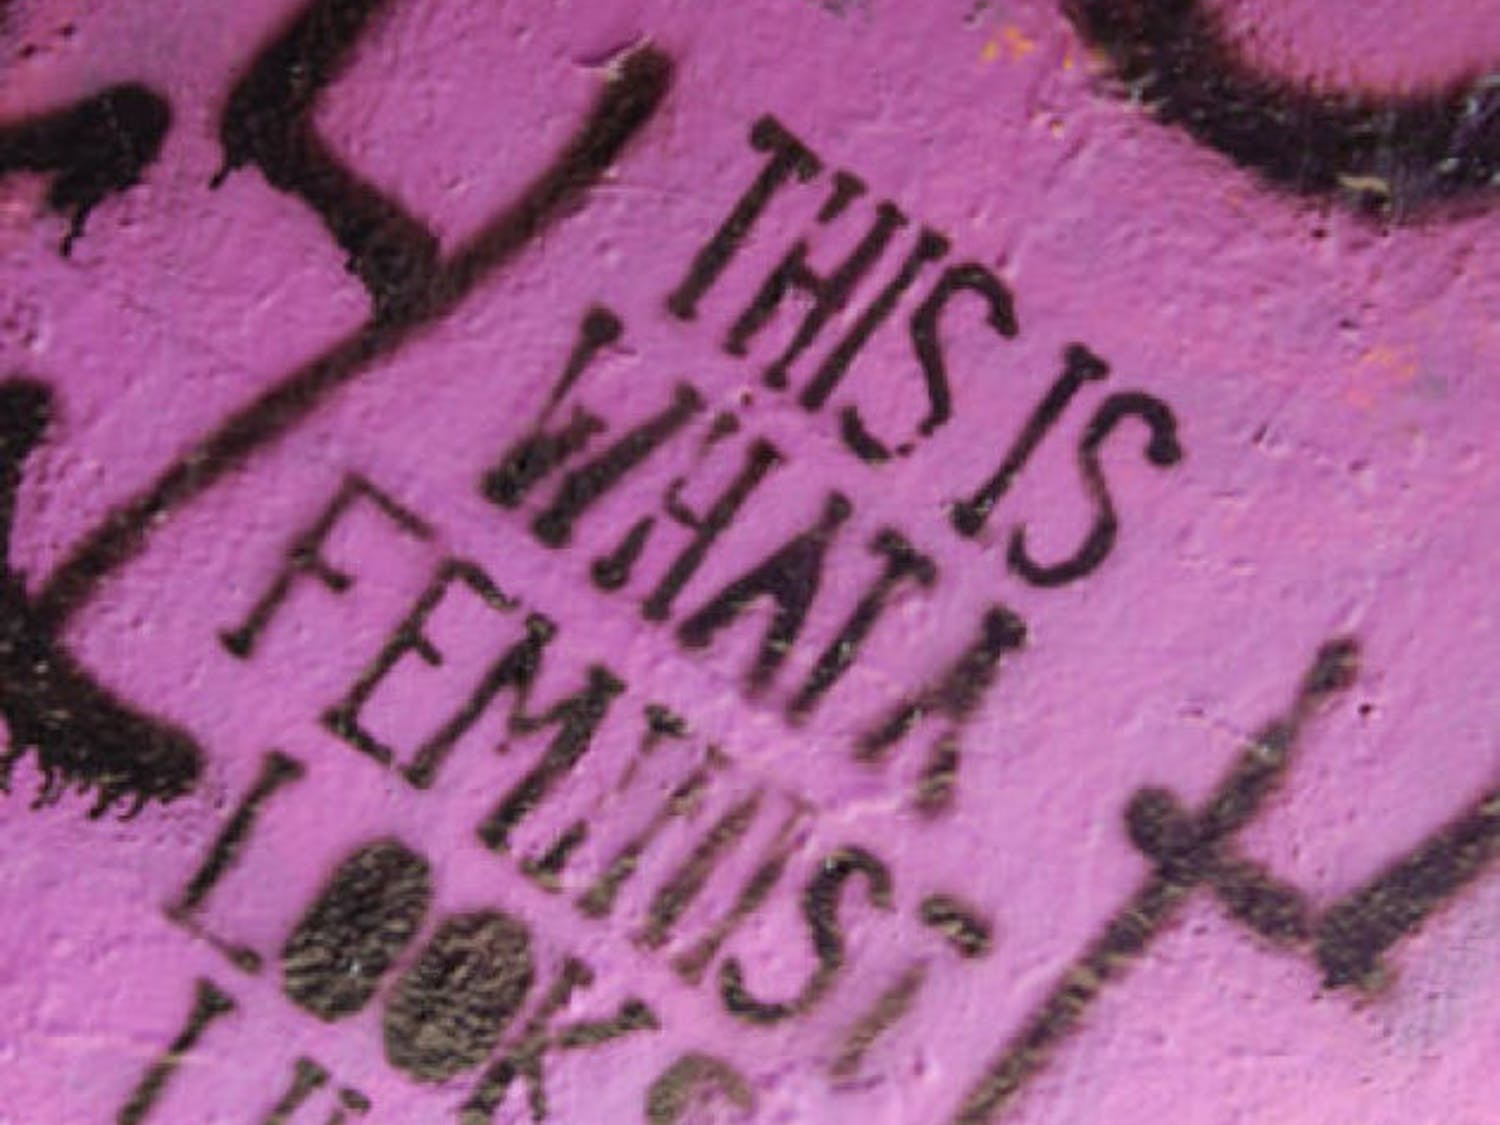 """""""Feminism or Vandalism?"""" by mbf2012, used under CC BY-NC-ND 2.0"""